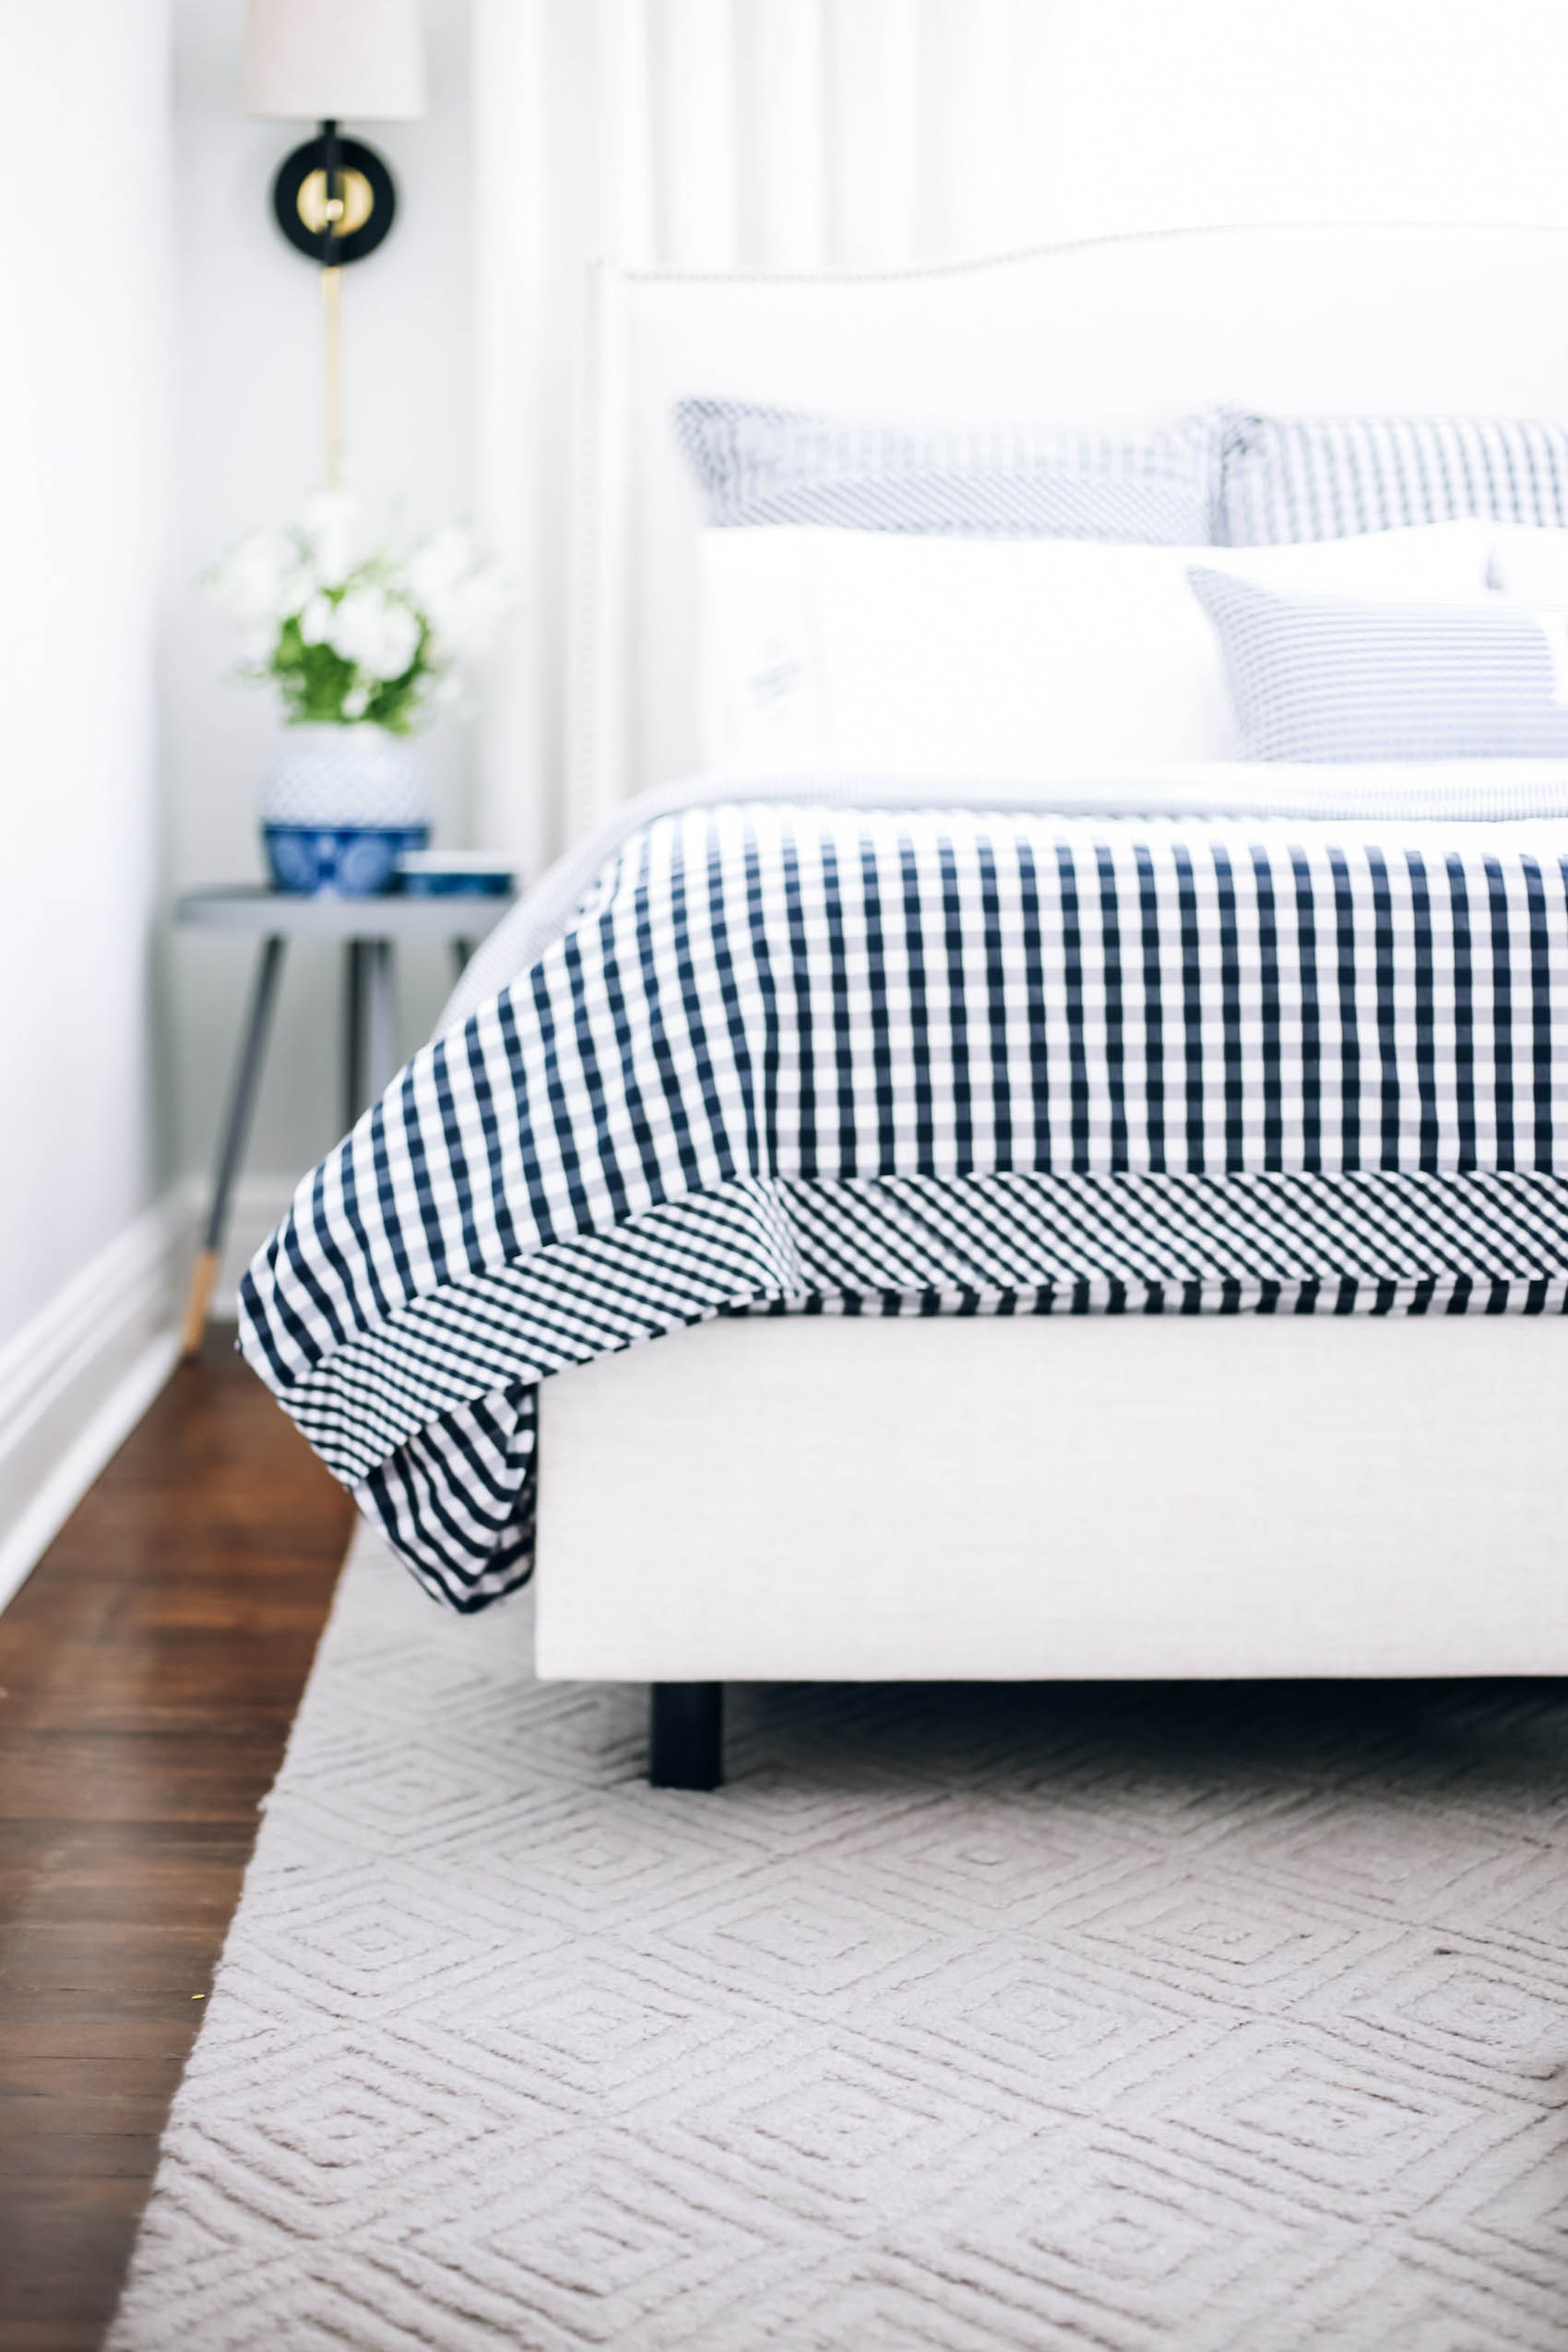 King Size Bed Small Bedroom How To Make The Room Appear Bigger